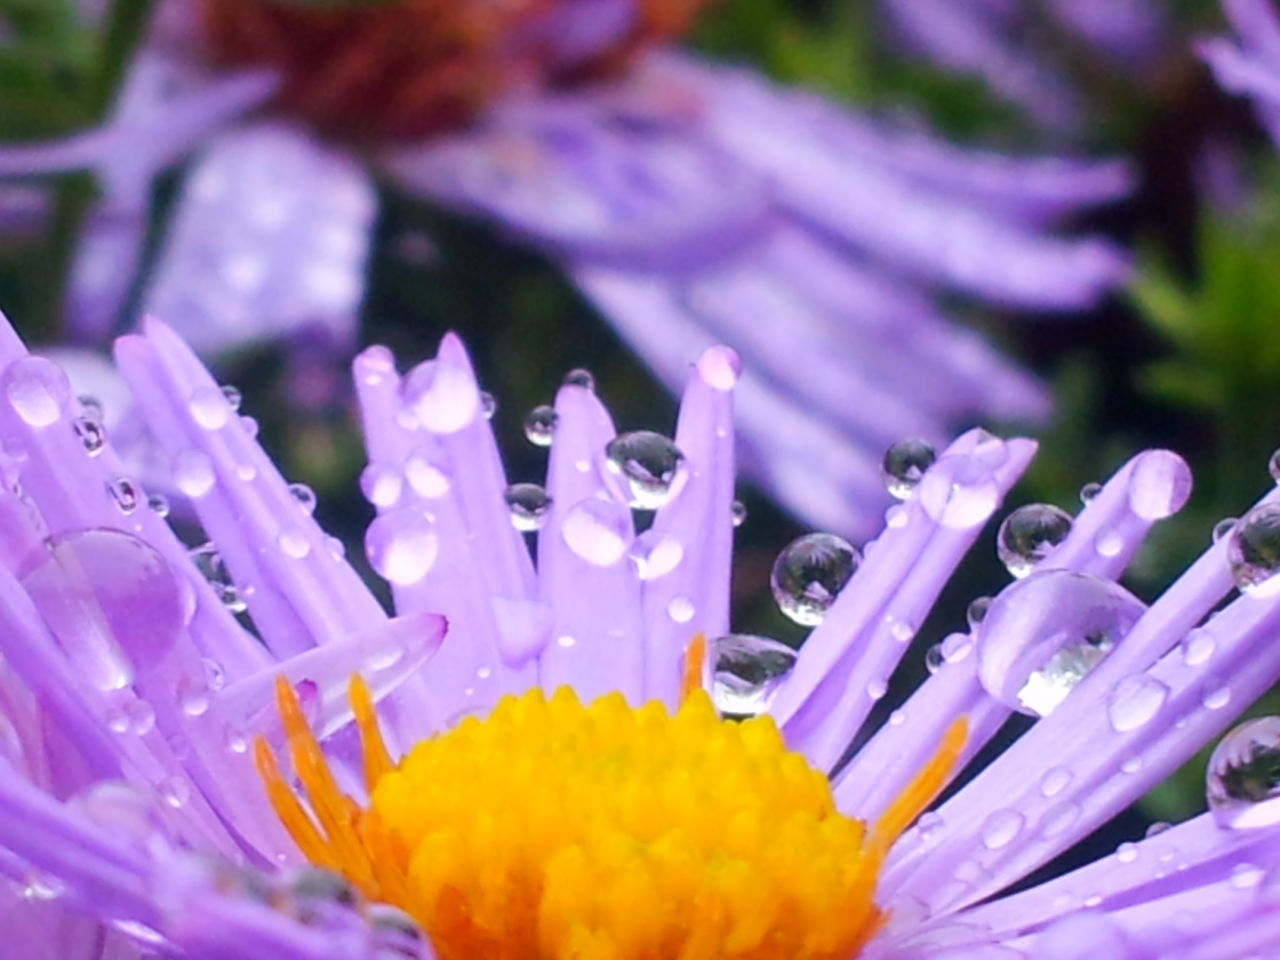 Animal Themes Beauty In Nature Blooming Close-up Day Flower Flower Head Fragility Freshness Growth Nature No People Onedrop Outdoors Petal Purple Raindropmaster Raindrops On Flowers Selective Focus Waterdropmaster Waterdrops Flowers Waterdropsphotography